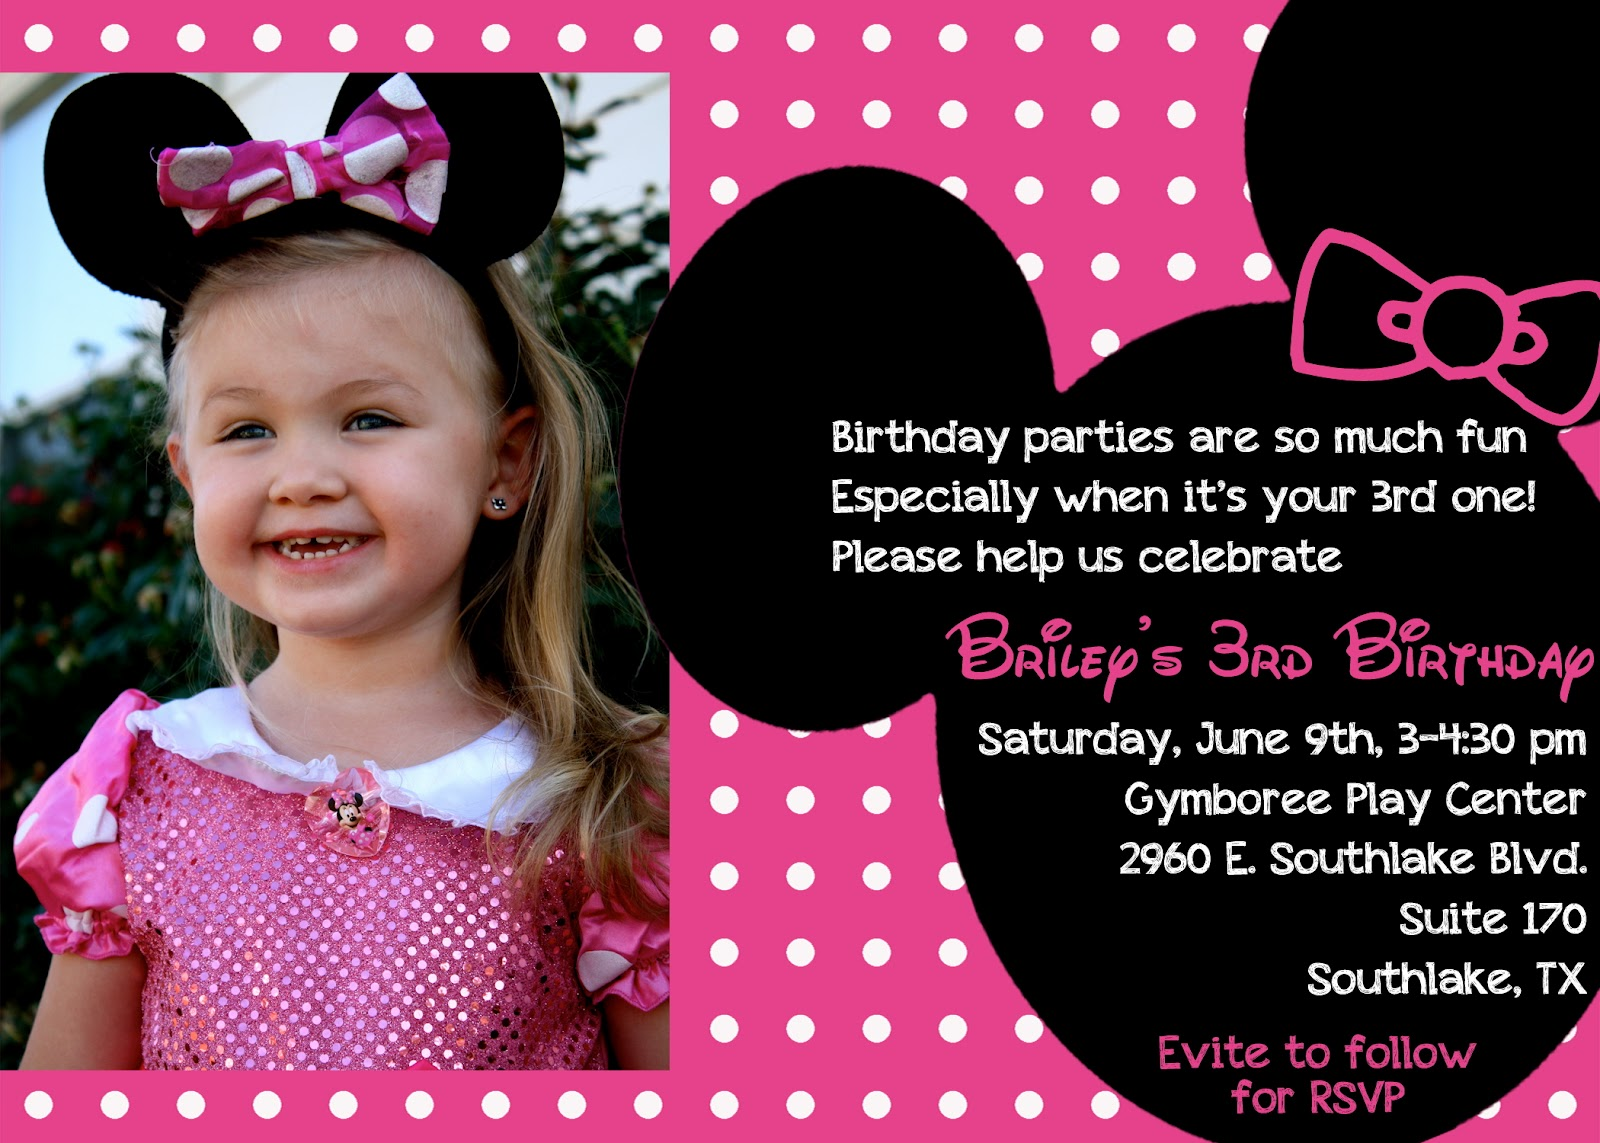 3rd birthday party invitation quotes ; d5fa85baf25923a61503755efbae7638